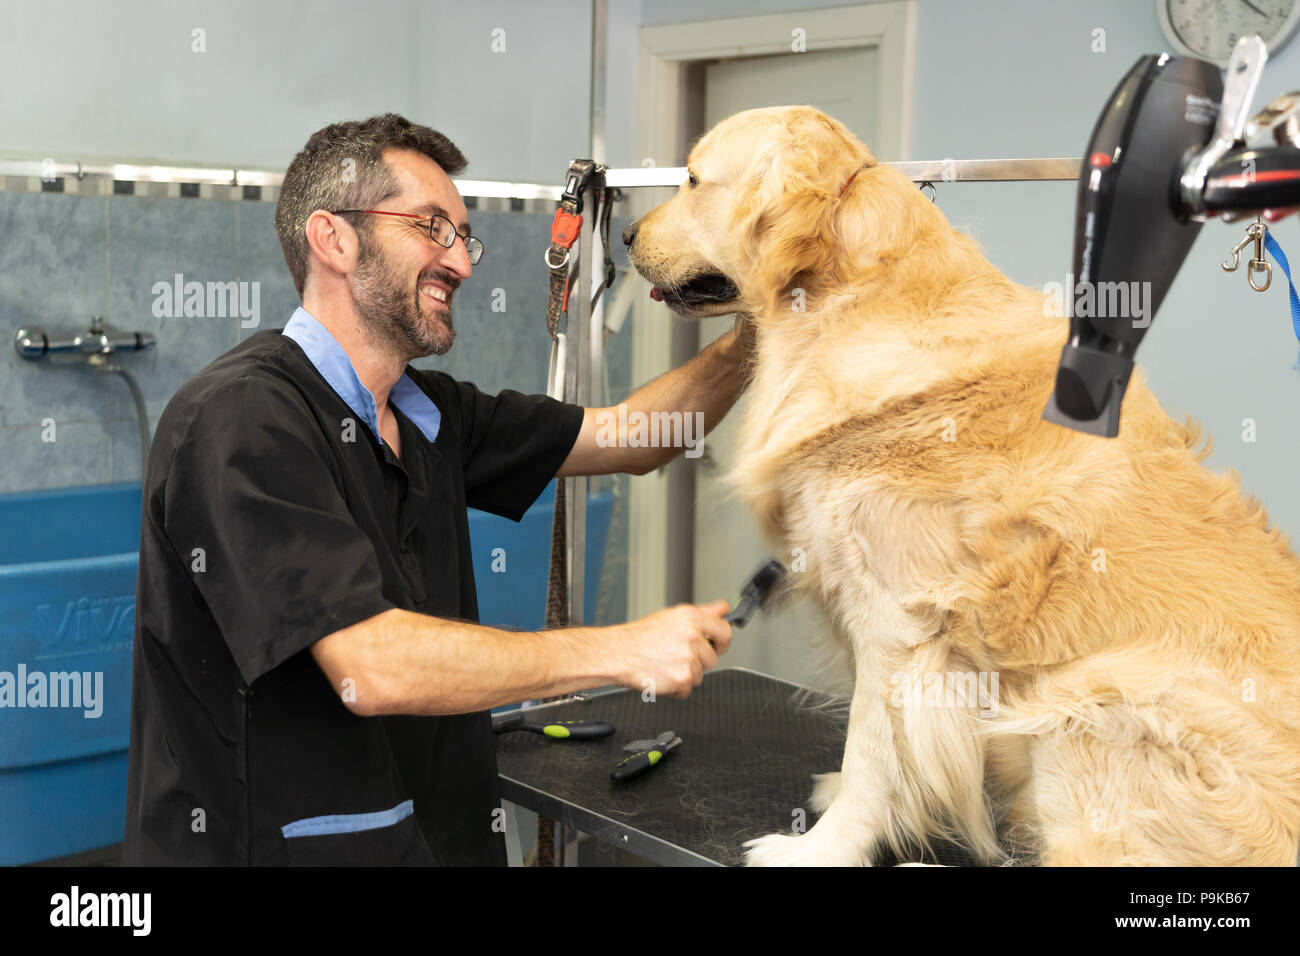 male pet groomer washing and cleaning a golden retriever in grooming salon in keeping your animals clean and healthy concept. - Stock Image